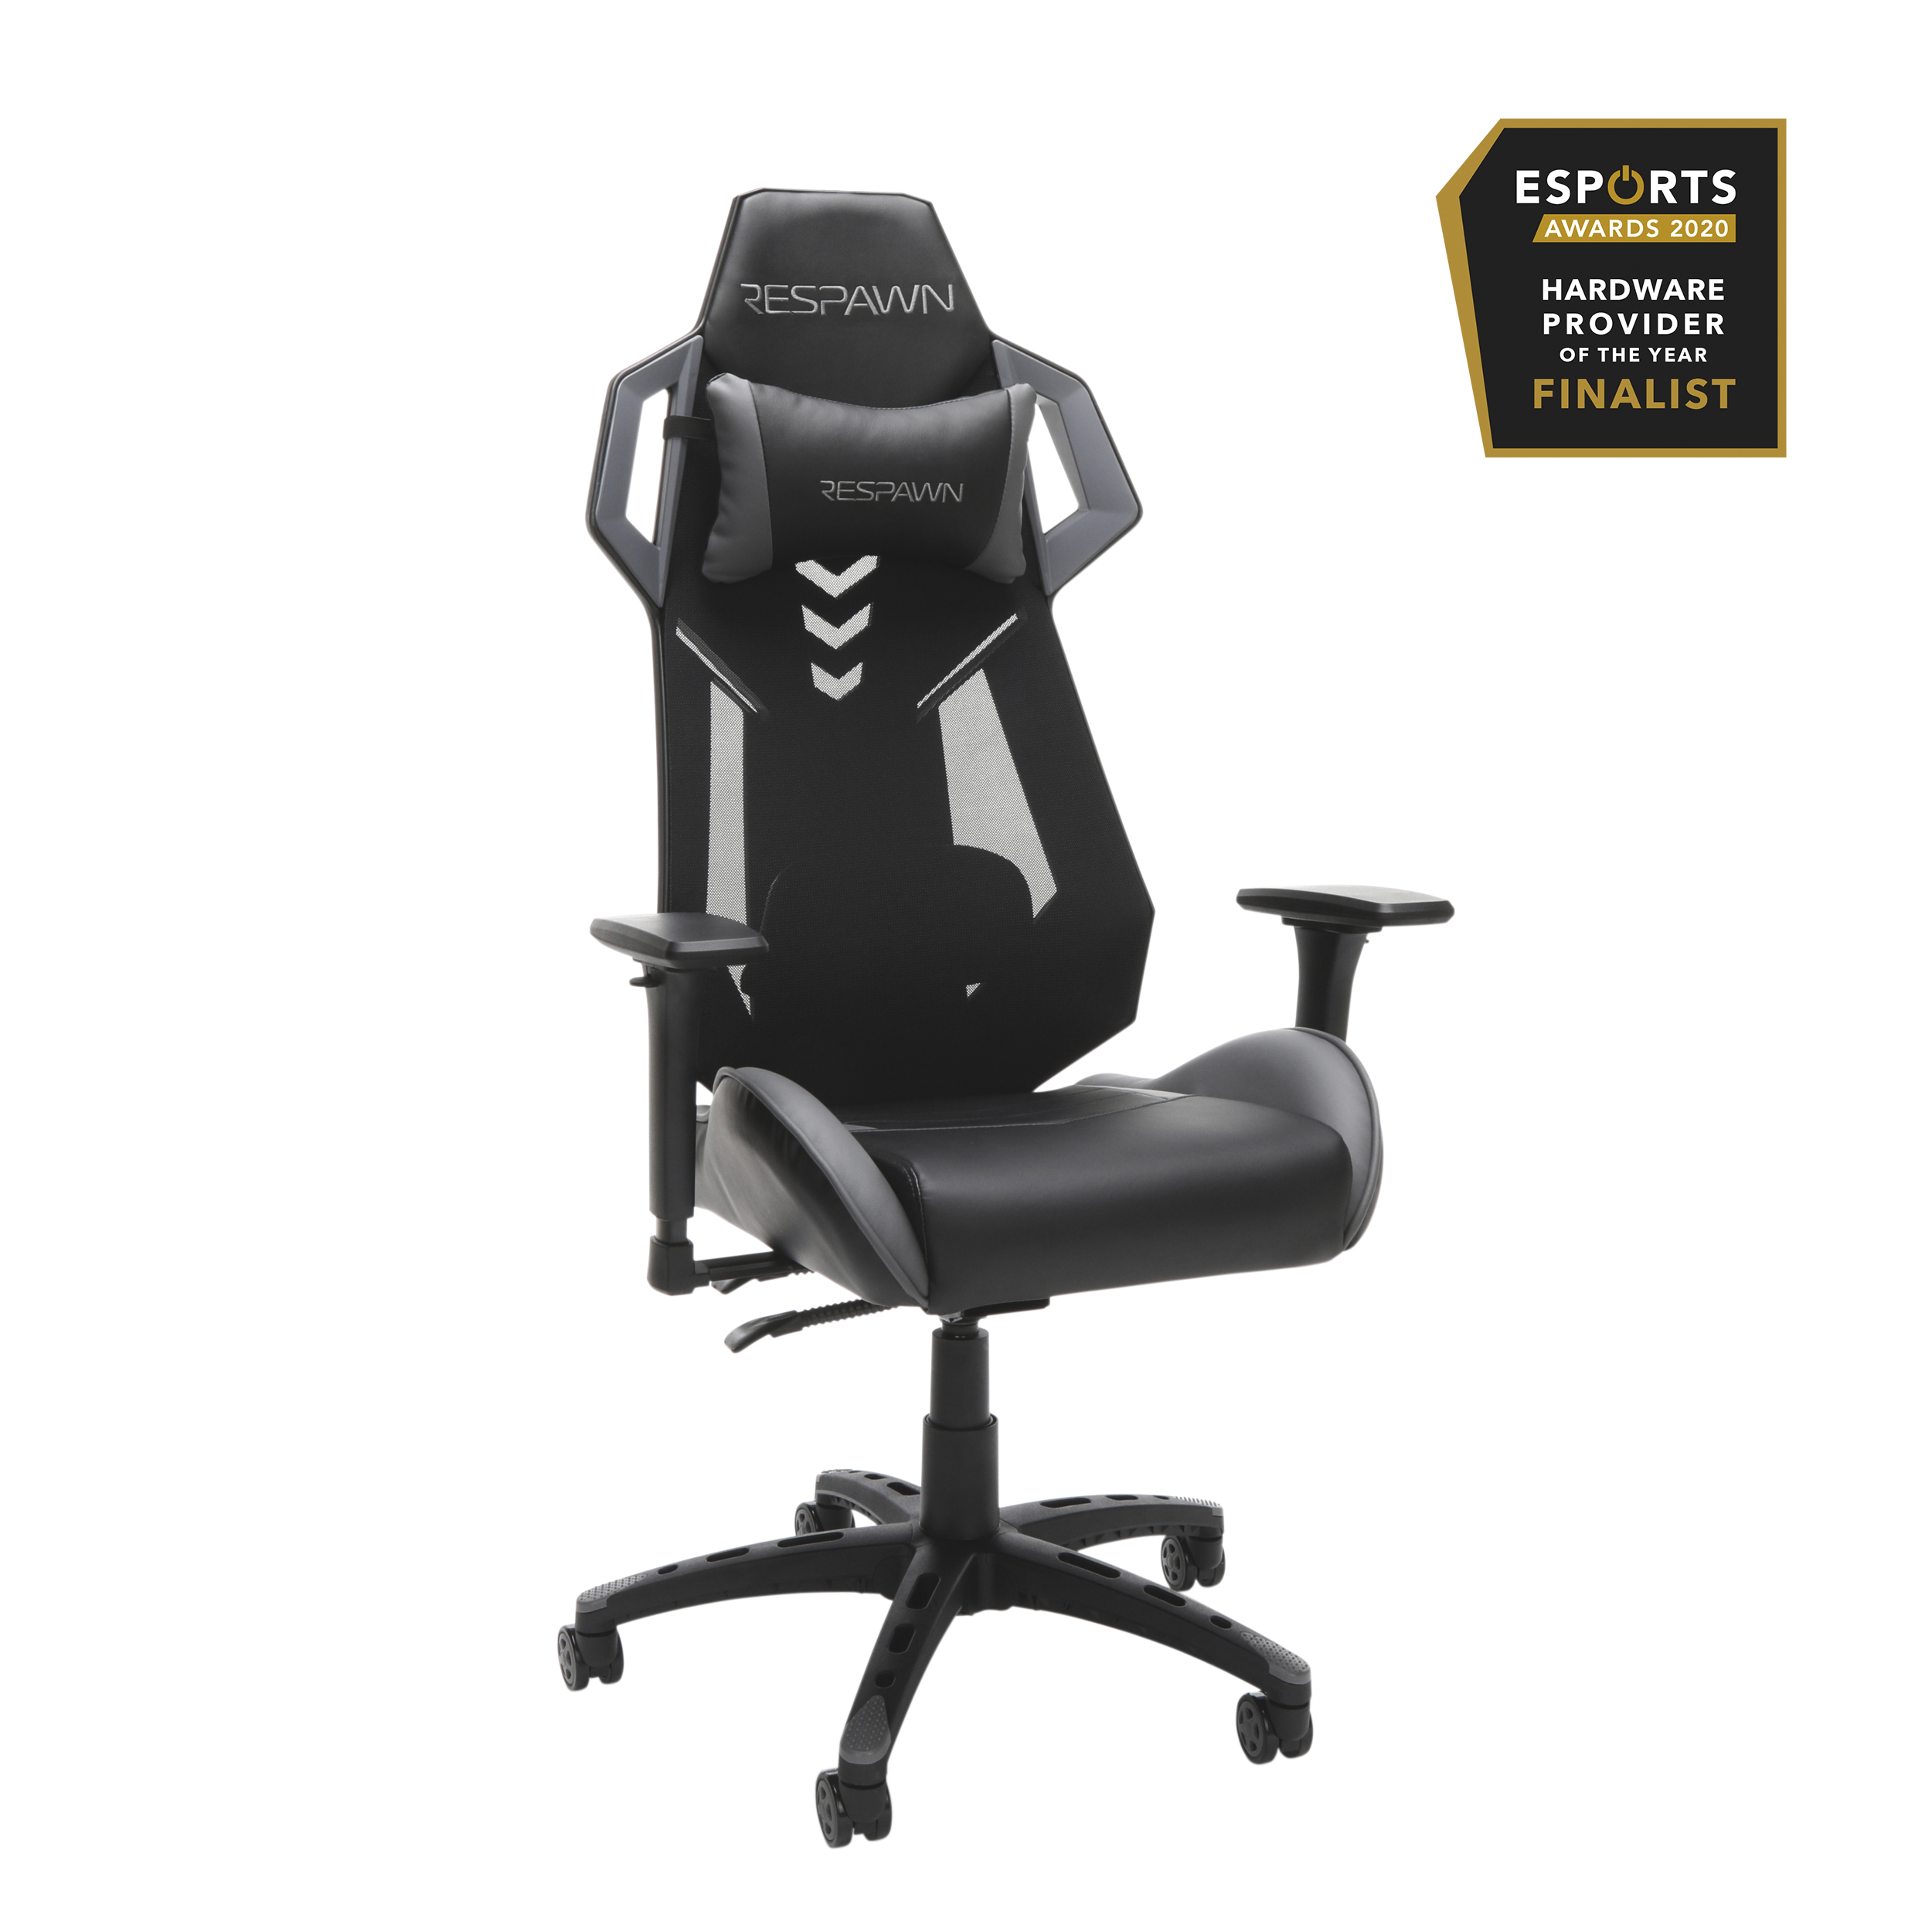 Respawn 200 Racing Style Gaming Chair Ergonomic Performance Mesh Back Chair Office Or Gaming Chair Blue Rsp 200 Walmart Com Walmart Com